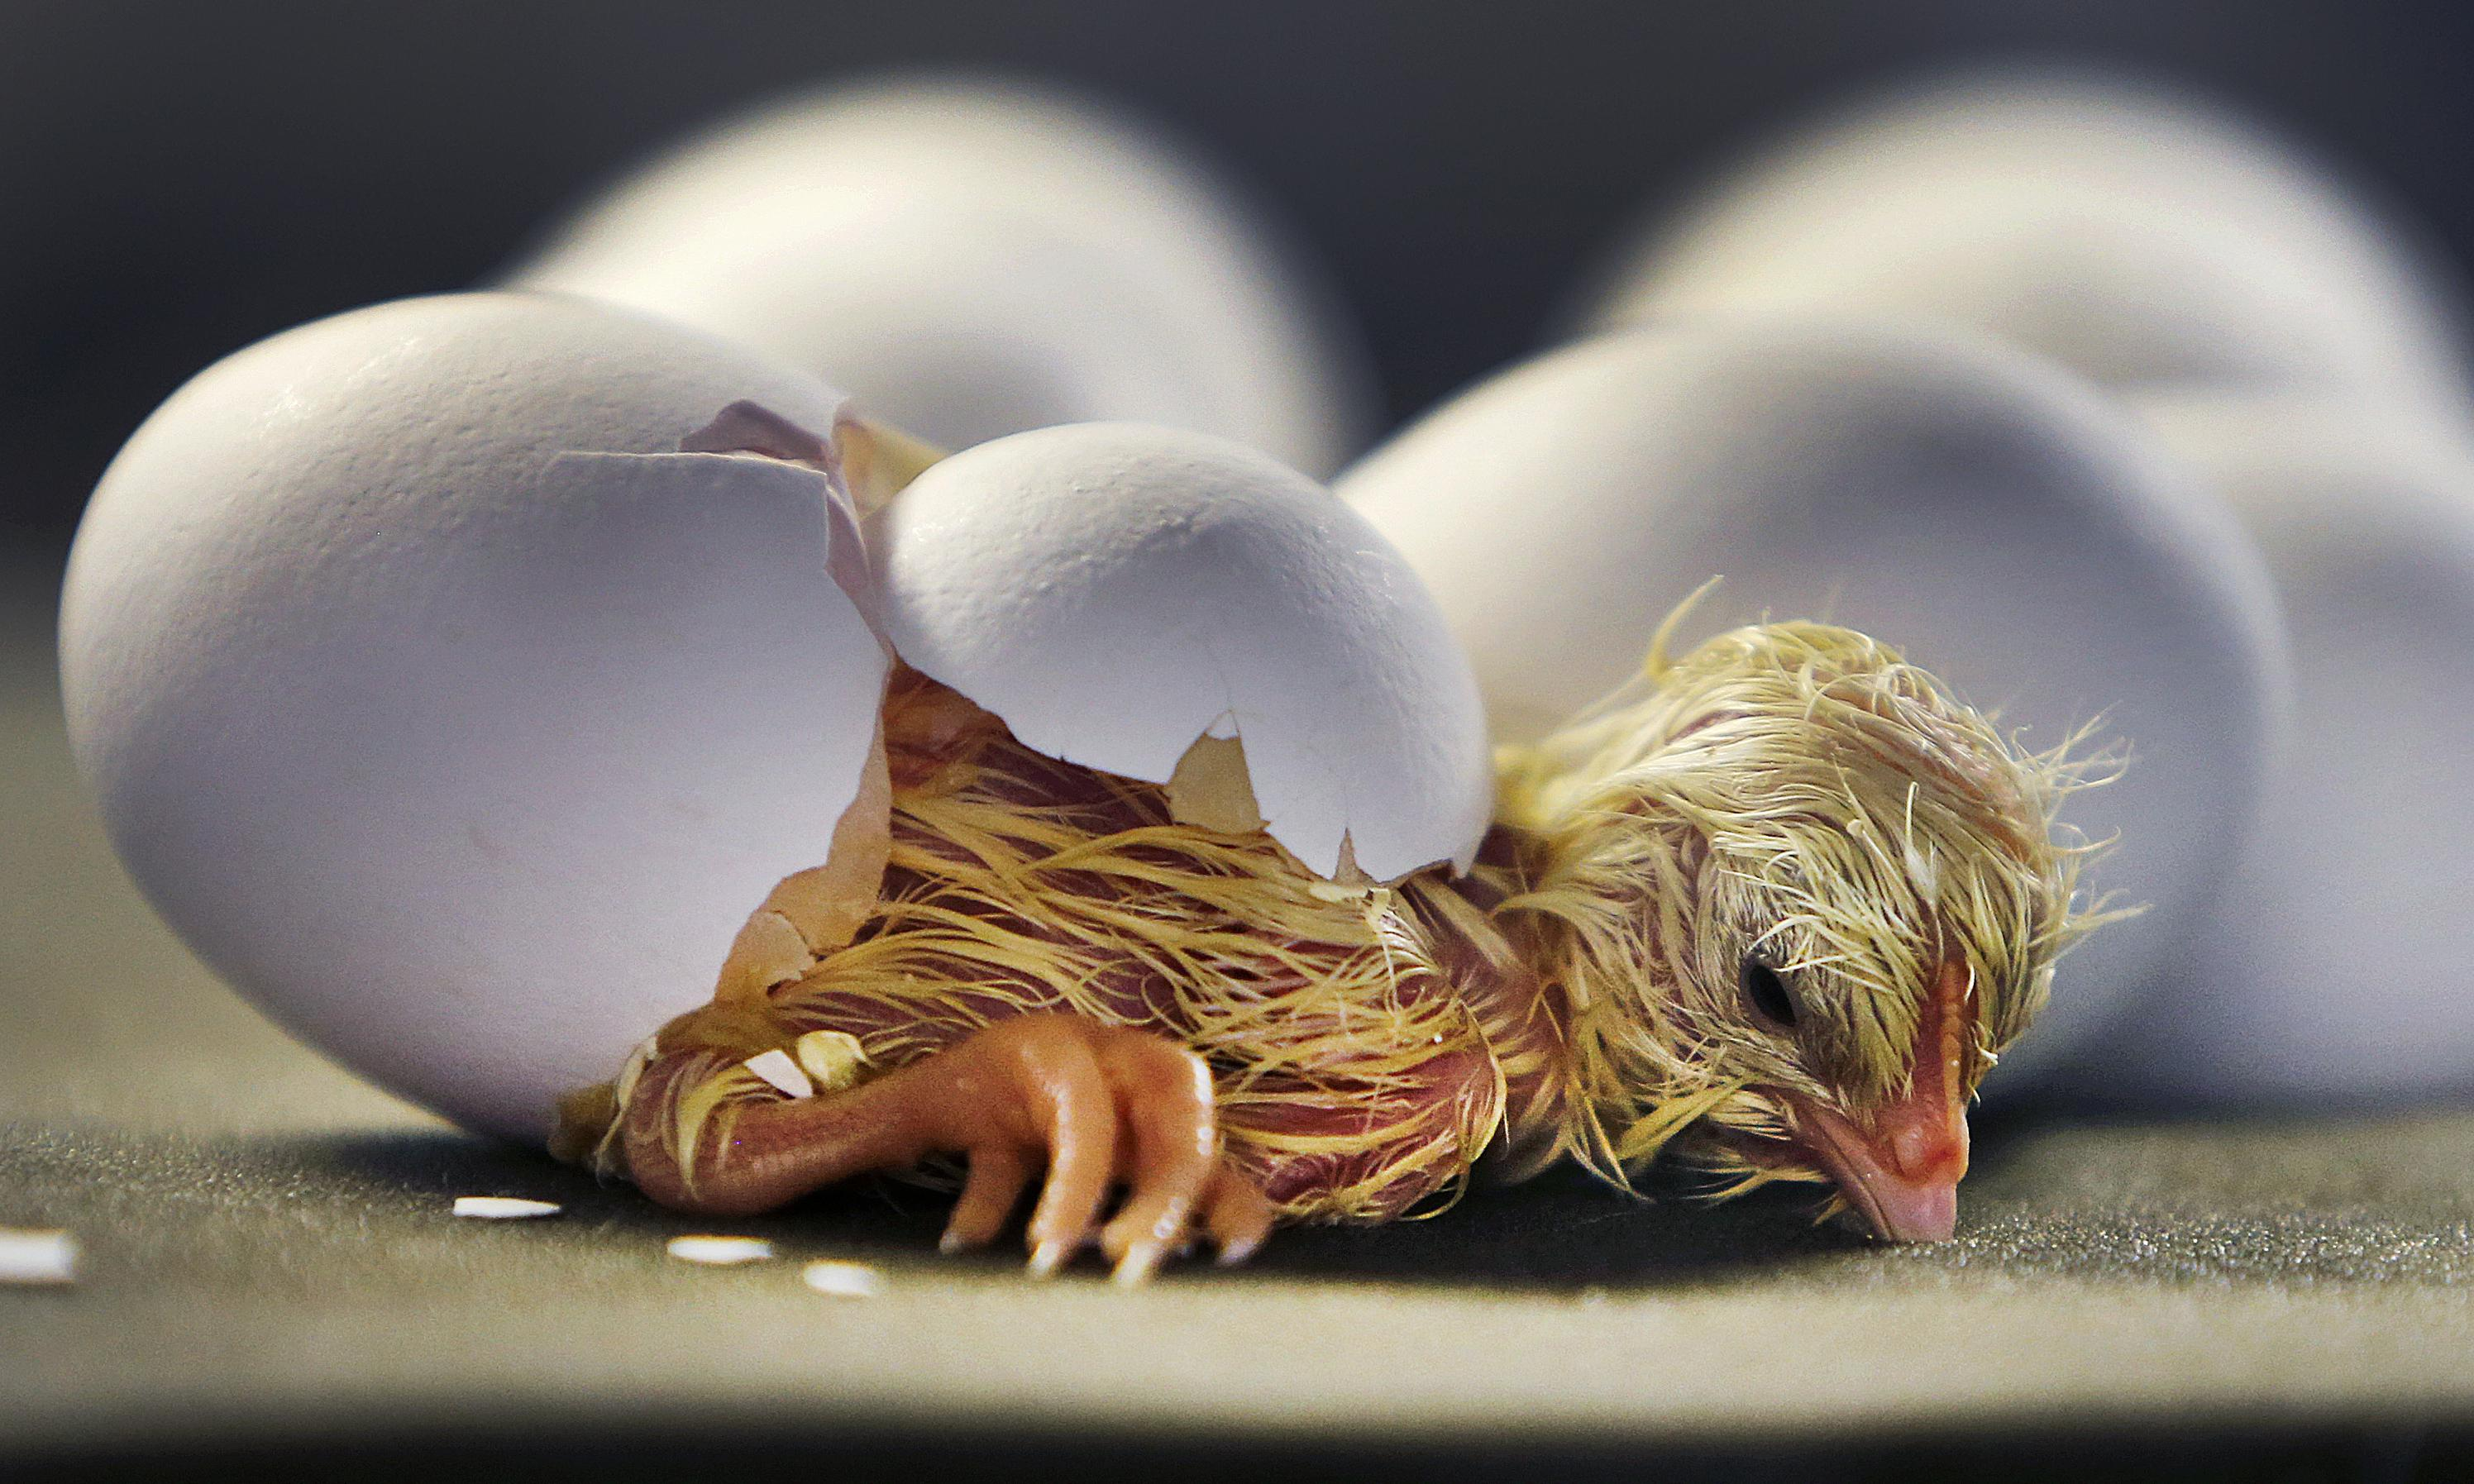 Scientists solve eggshell mystery of how chicks hatch